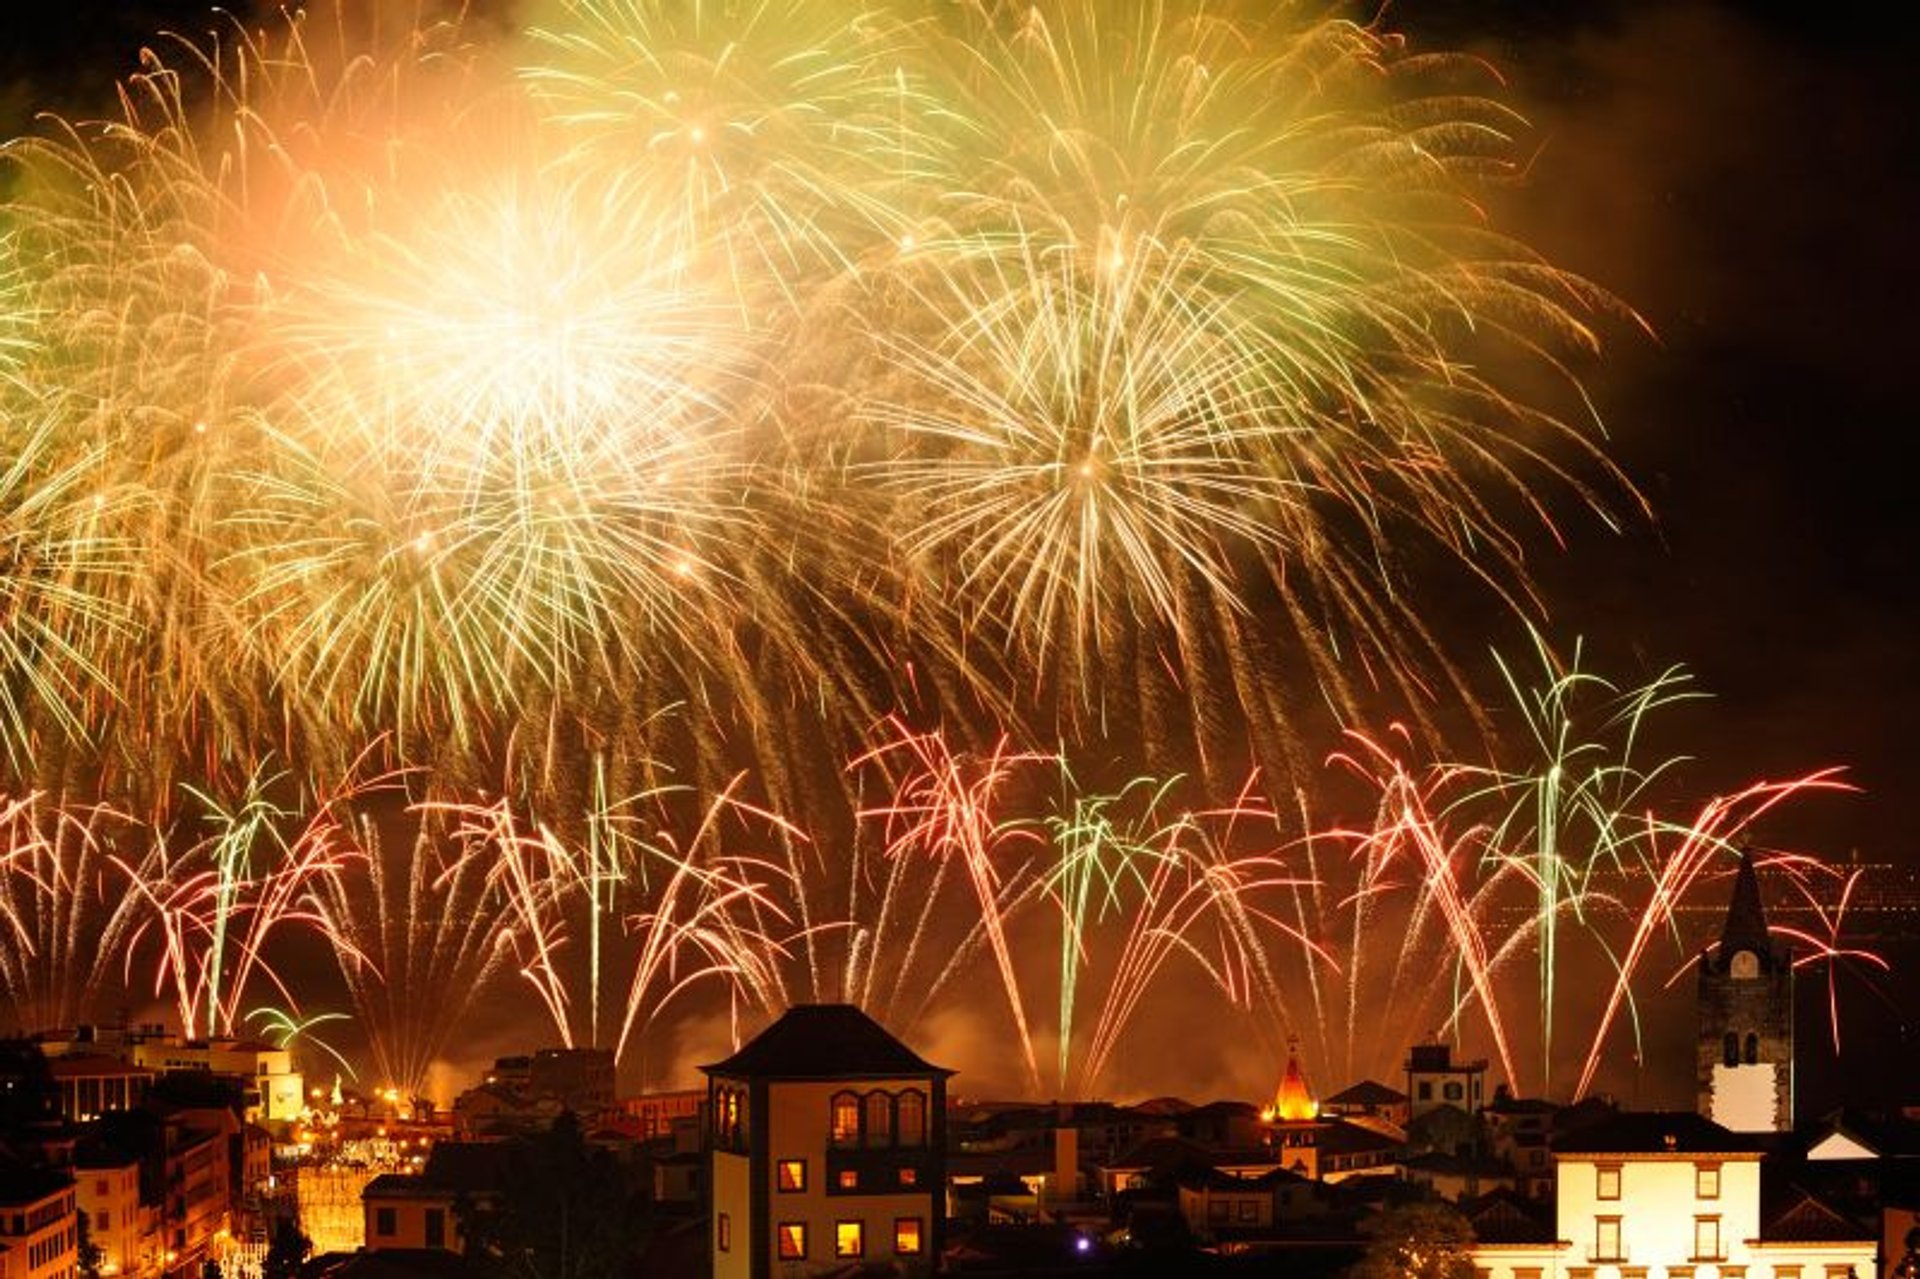 New Year's Fireworks in Madeira 2020 - Best Time